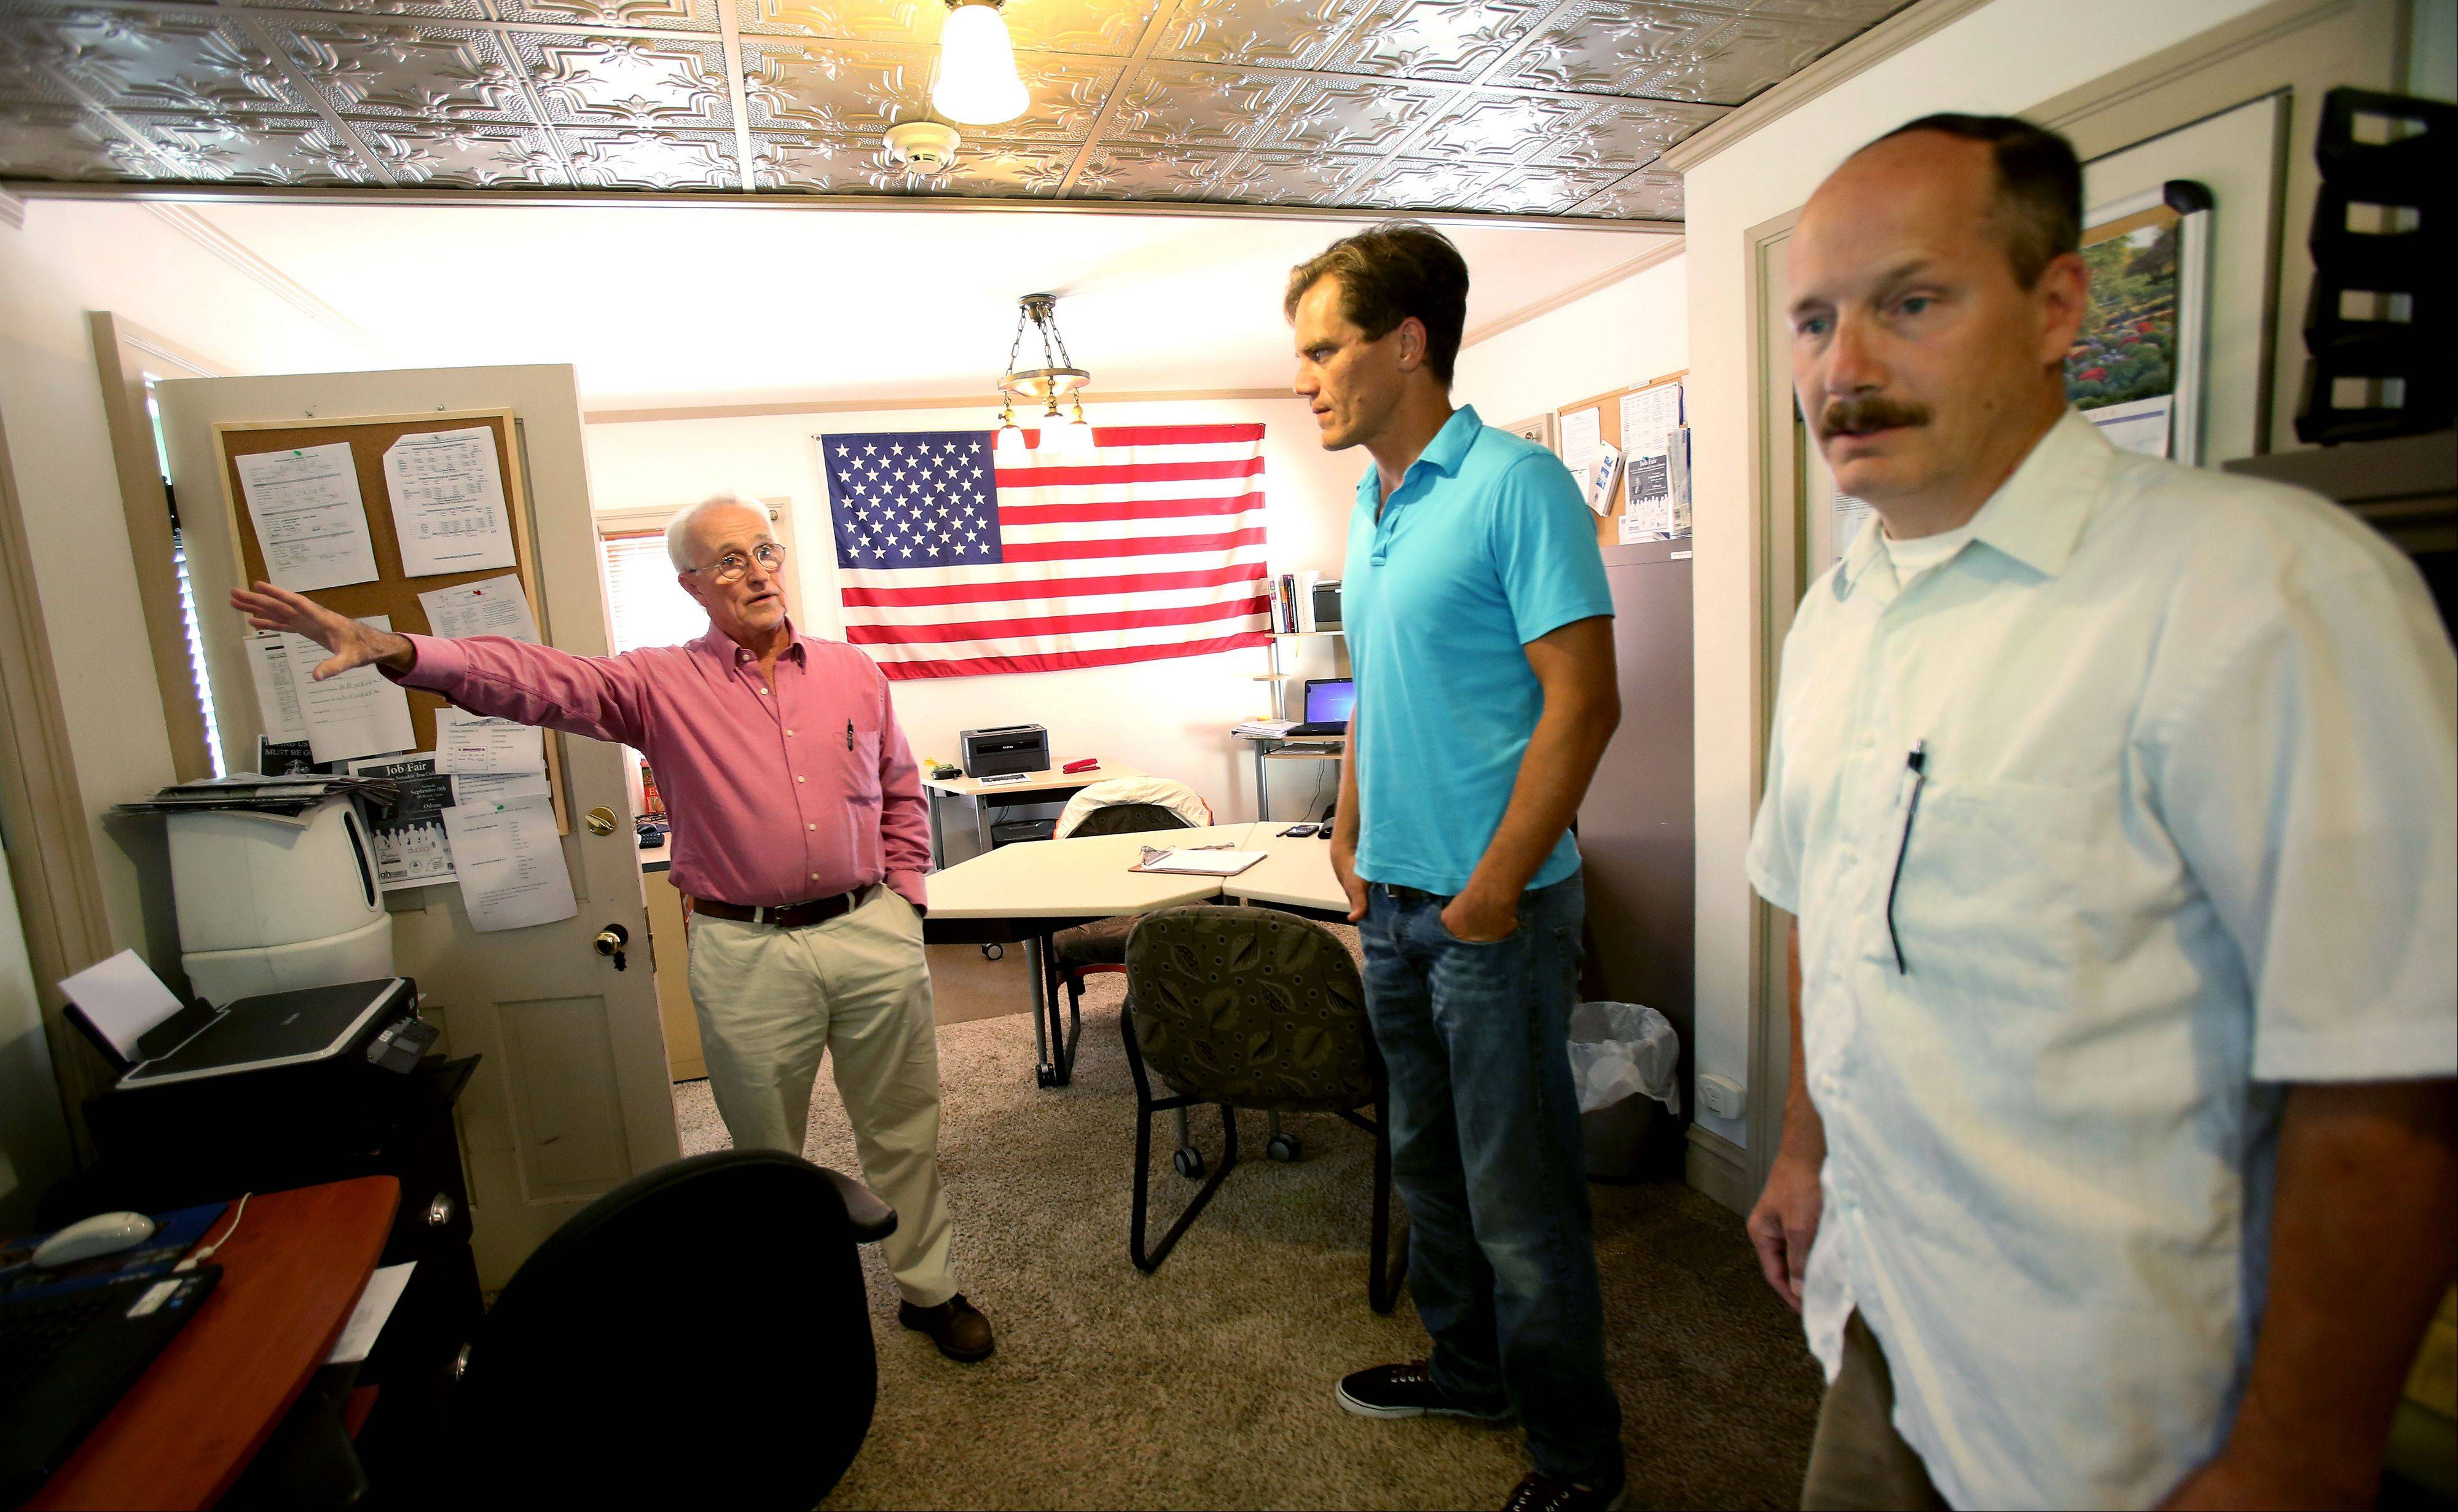 Bob Adams, left, shows actors Michael Shannon, center, and Guy Van Swearingen the Midwest Shelter for Homeless Veterans in Wheaton.